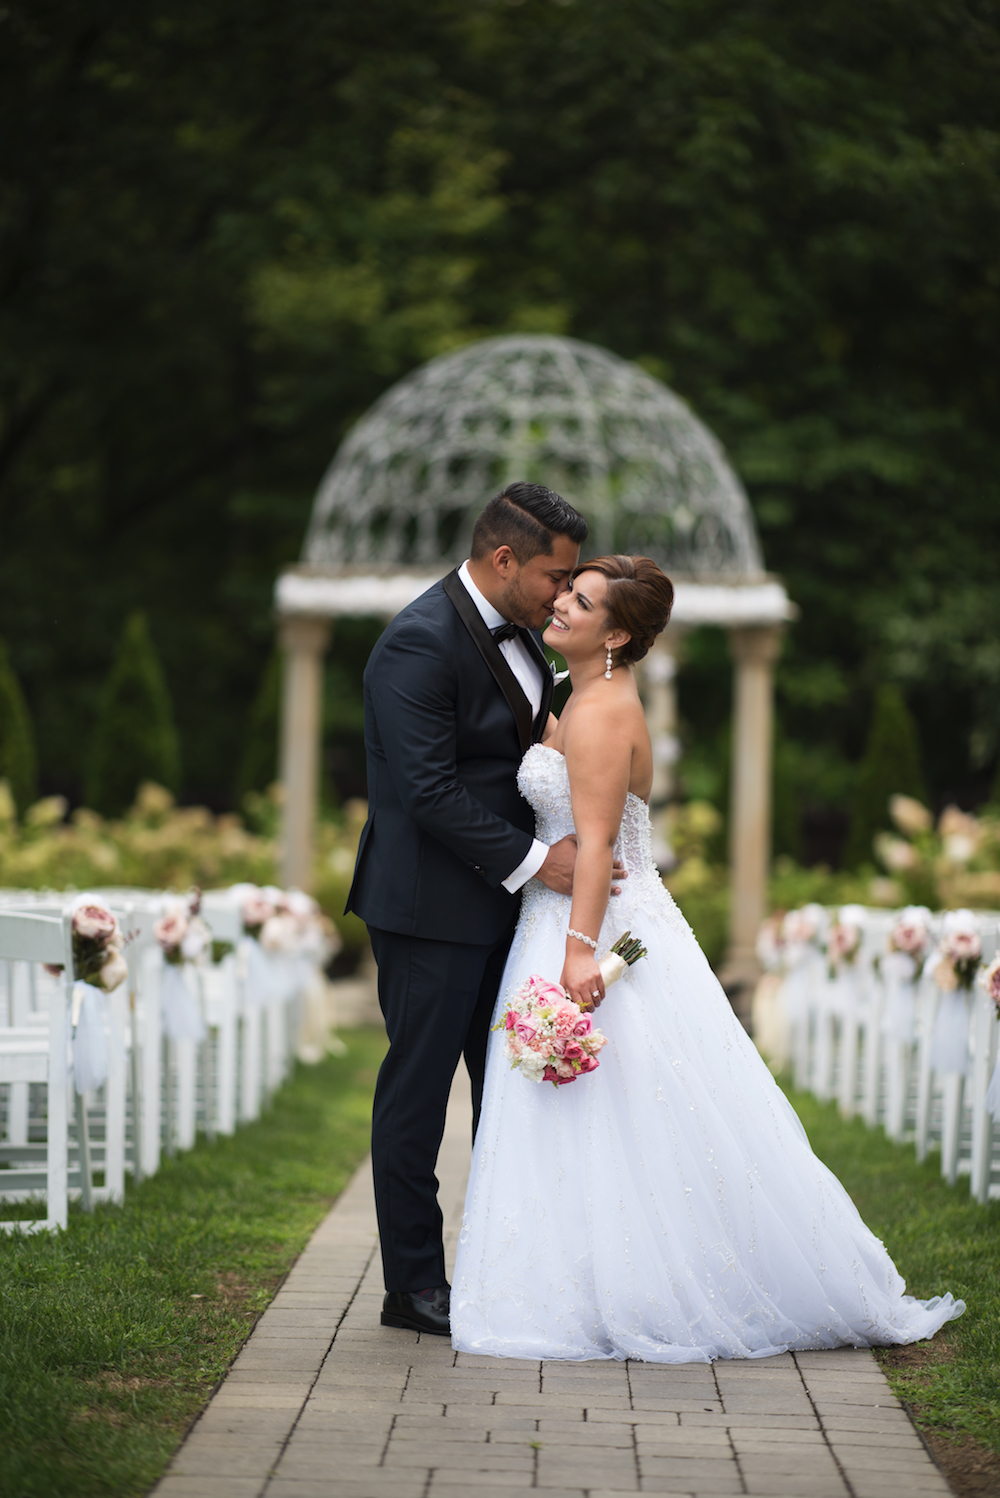 jay-kissing-annette-in-aisle-ceremony-wedding-photography-nj